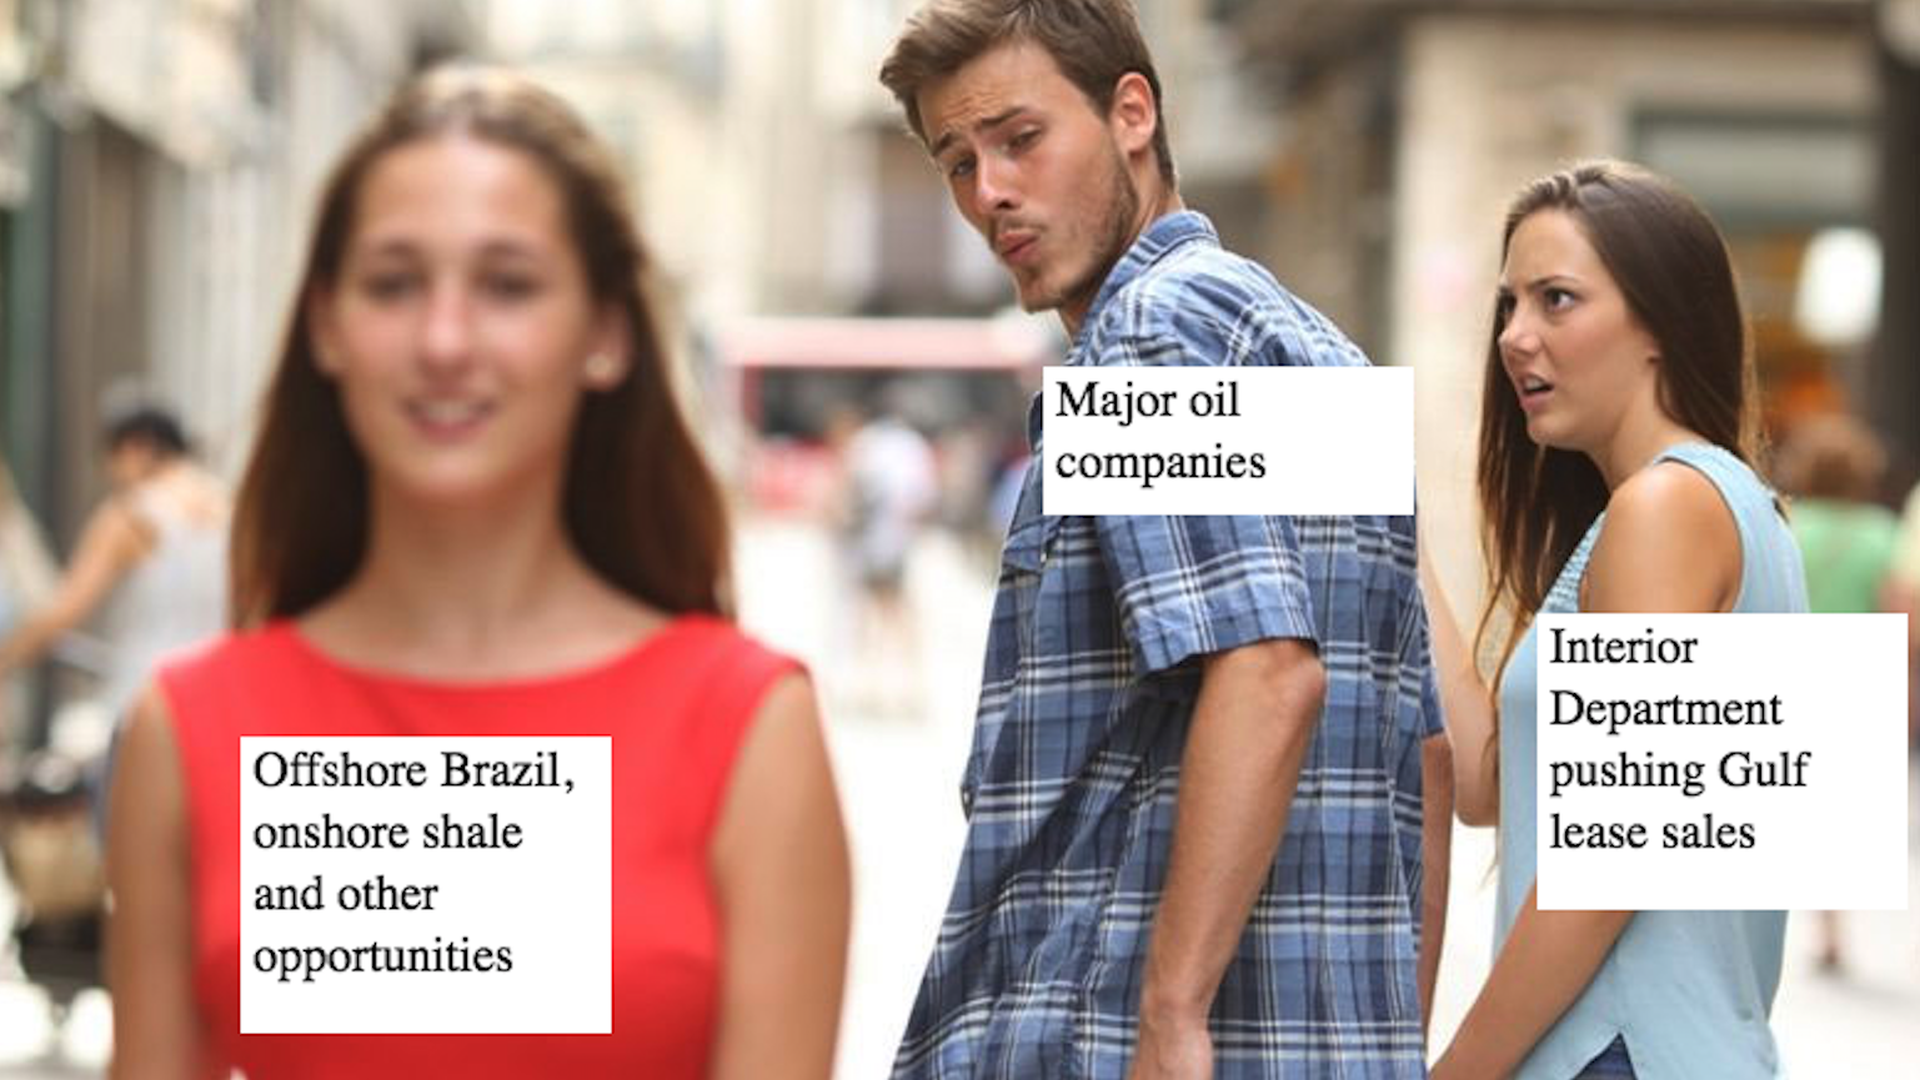 The wandering eye boyfriend meme in the context of offshore drilling